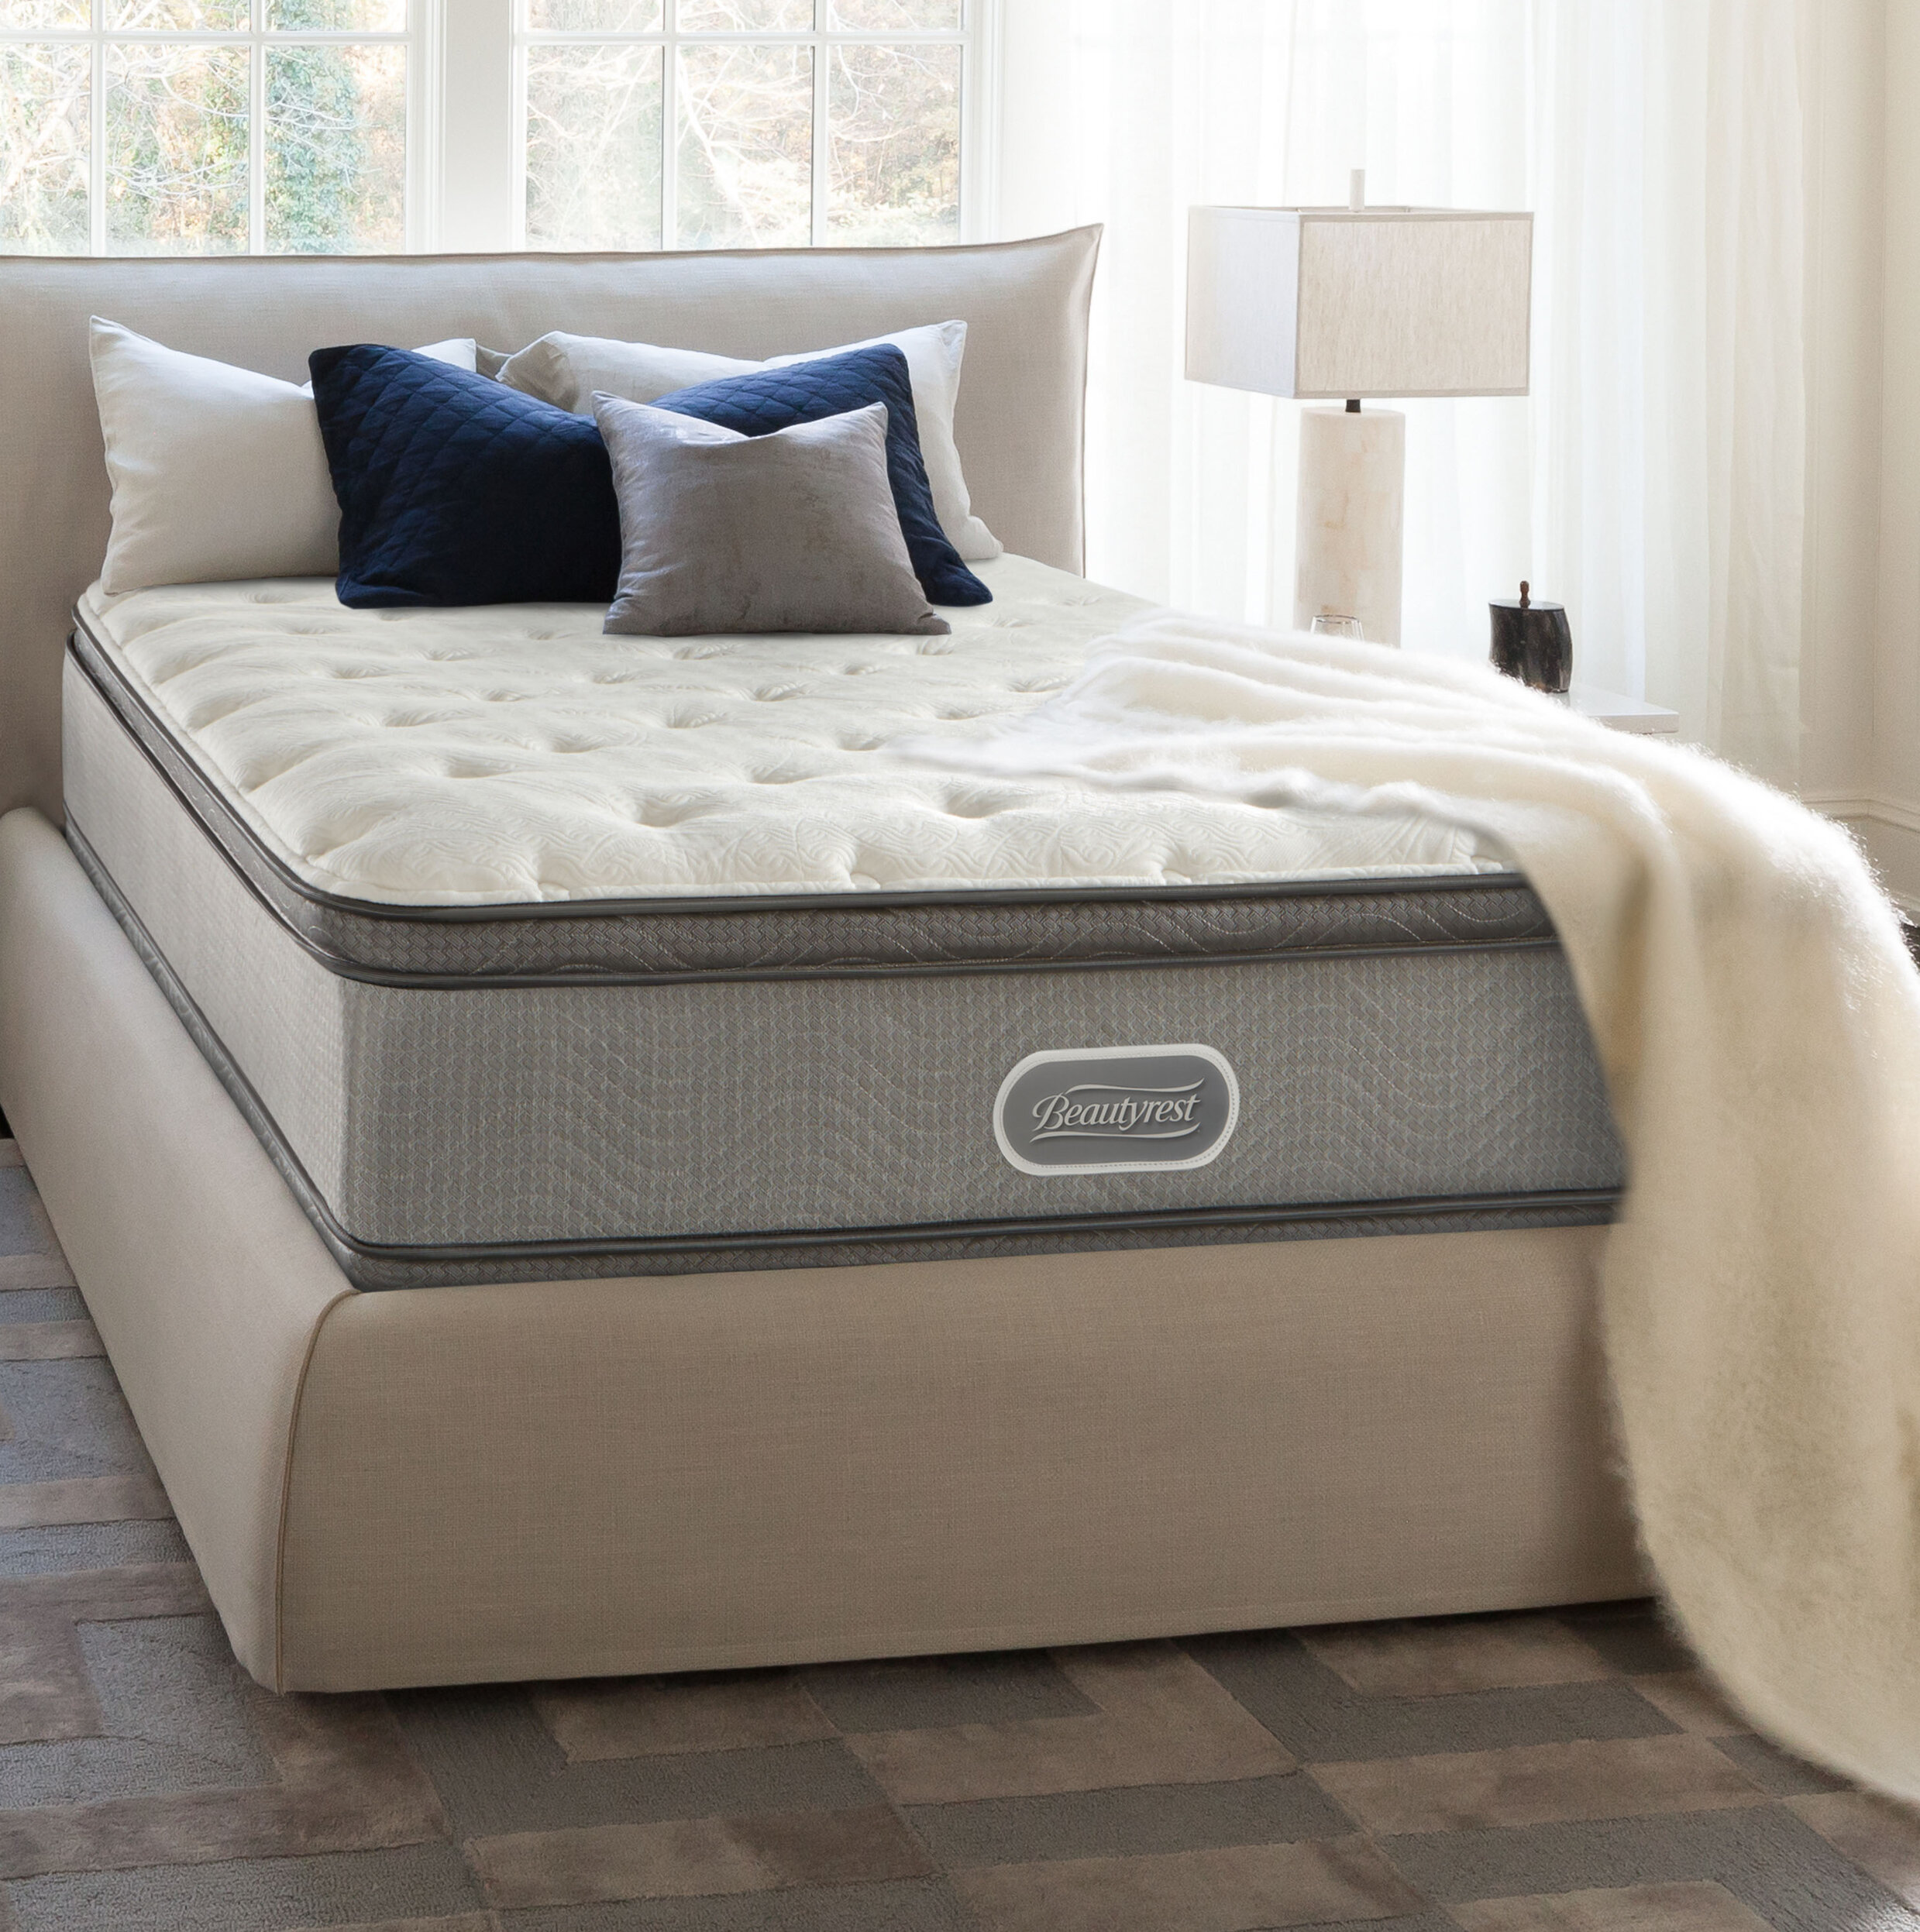 mattress shop plpt top topper city sun silo beautysleep pillow simmons plush sleep valley q